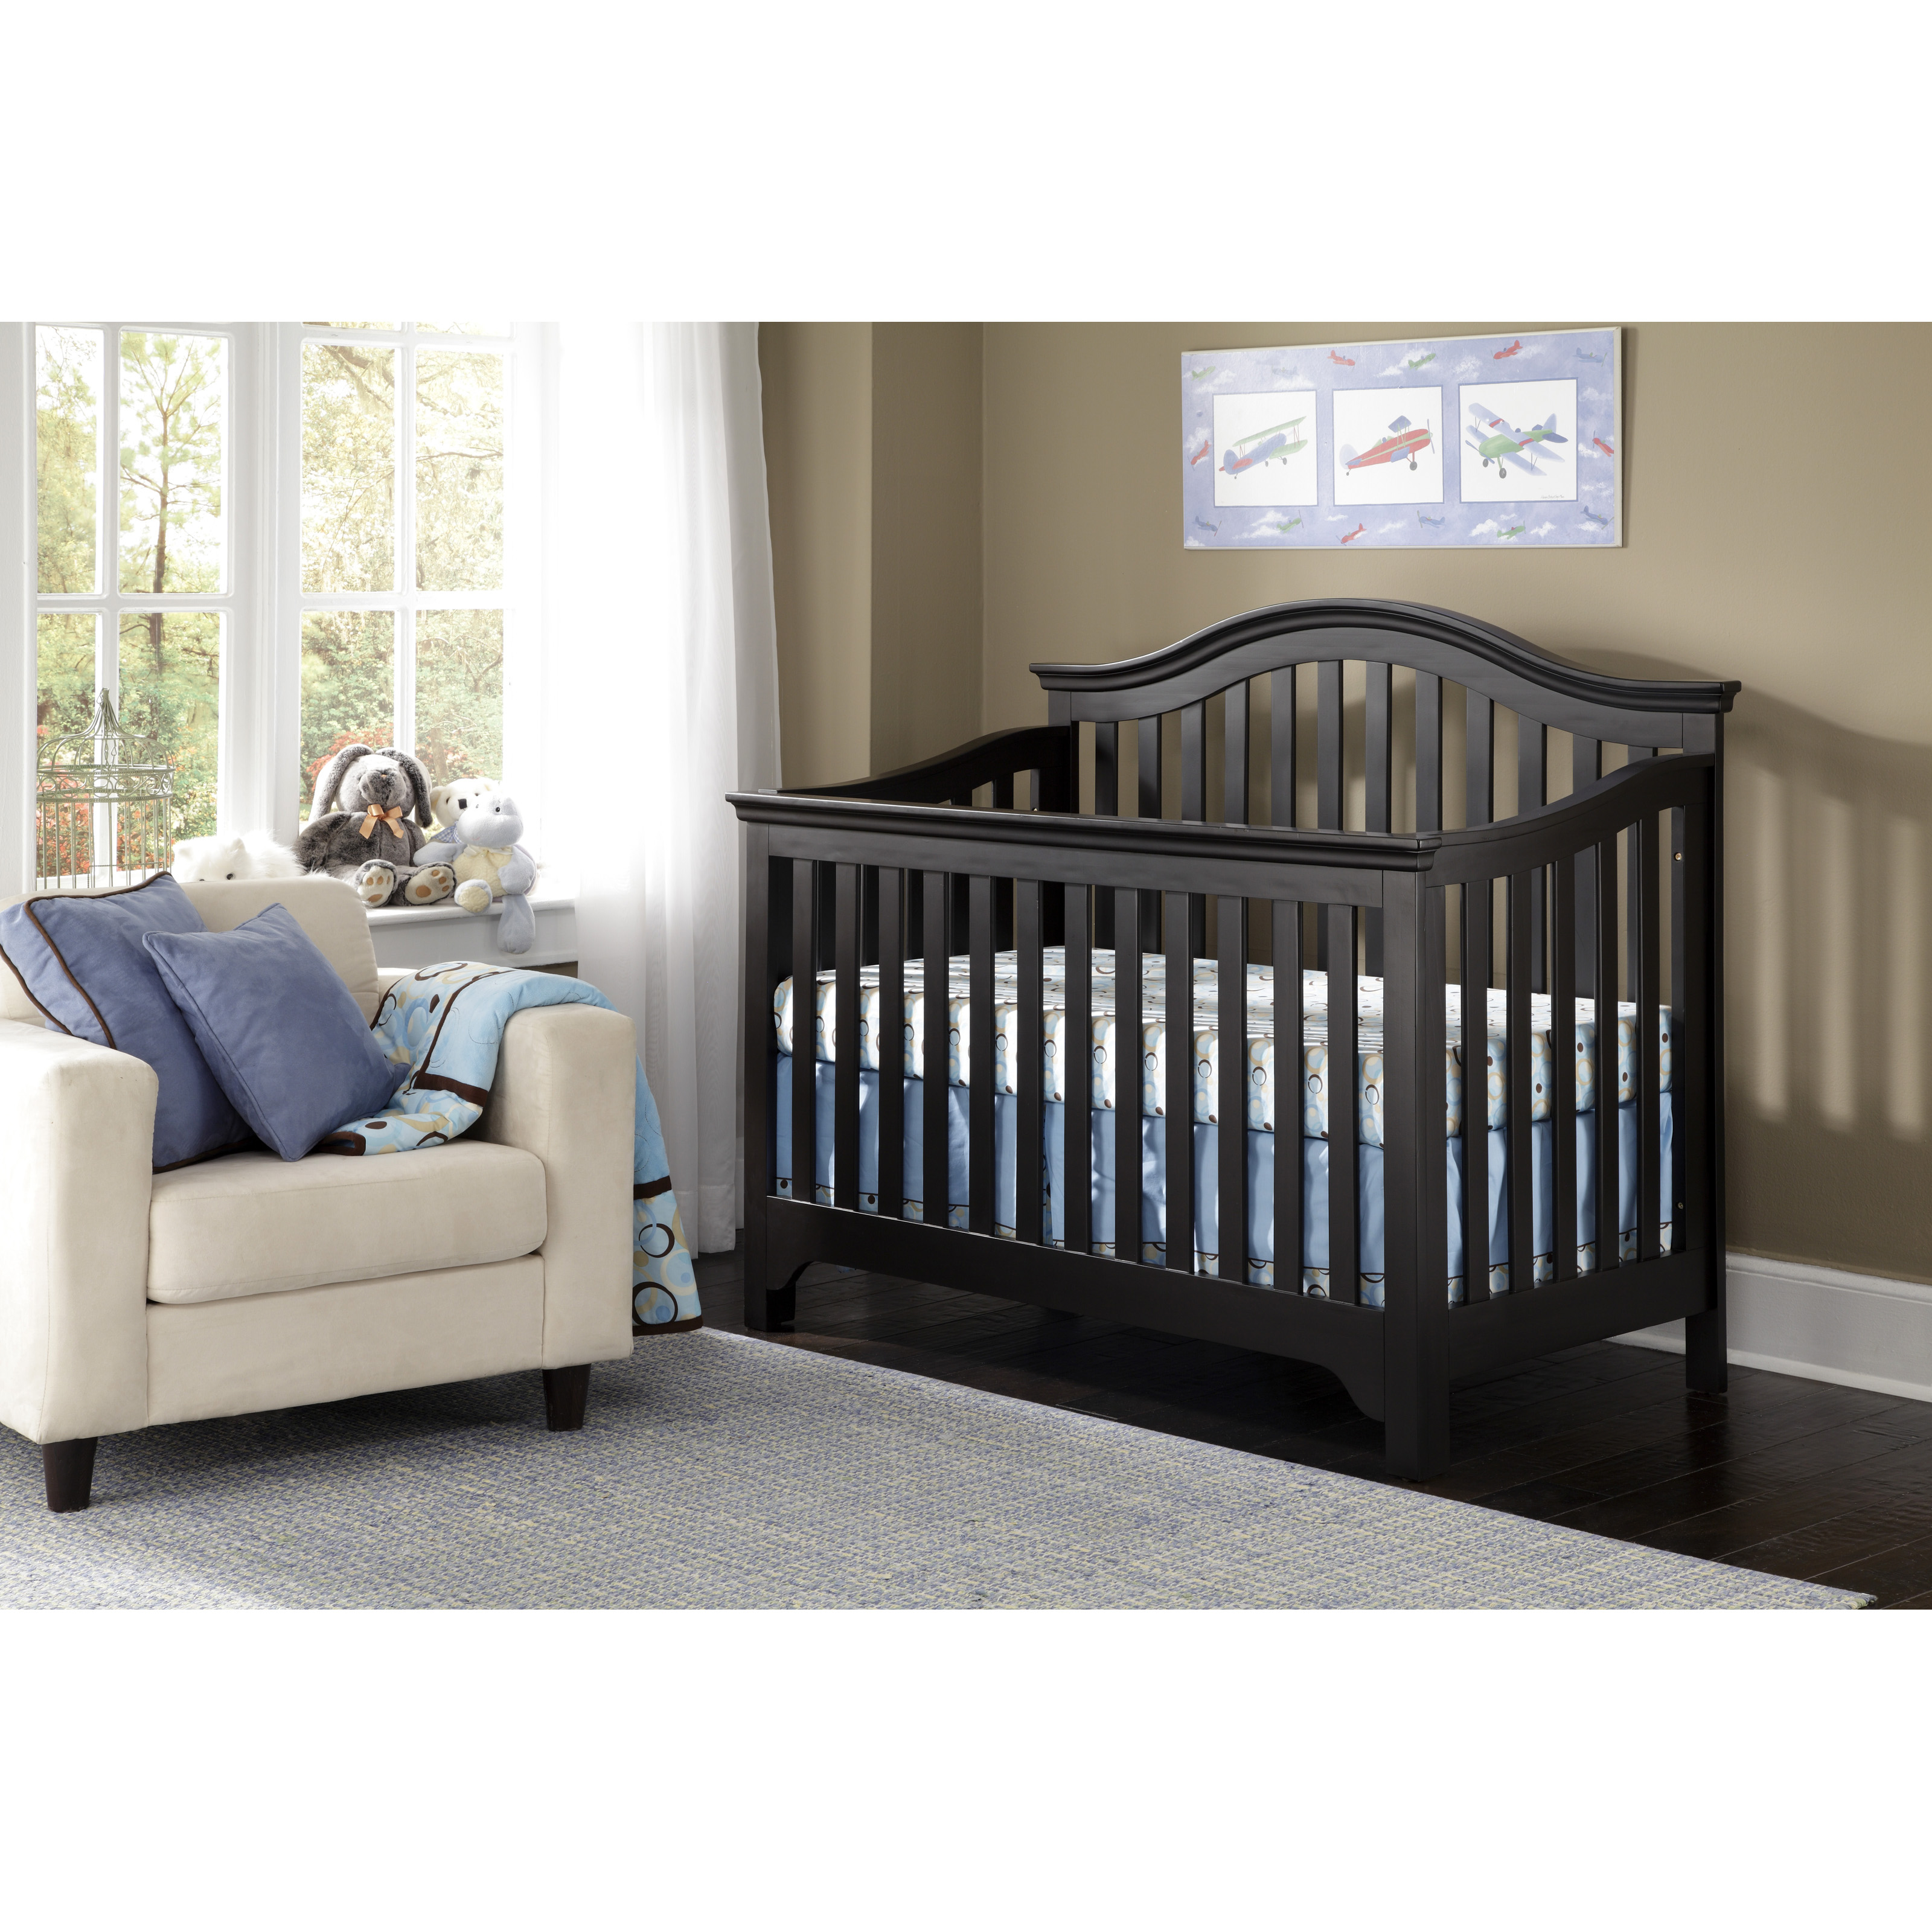 Baby Crib Black Davinci 4 In 1 Convertible Wood Baby Crib W Toddler Rail In Traditional Cribs